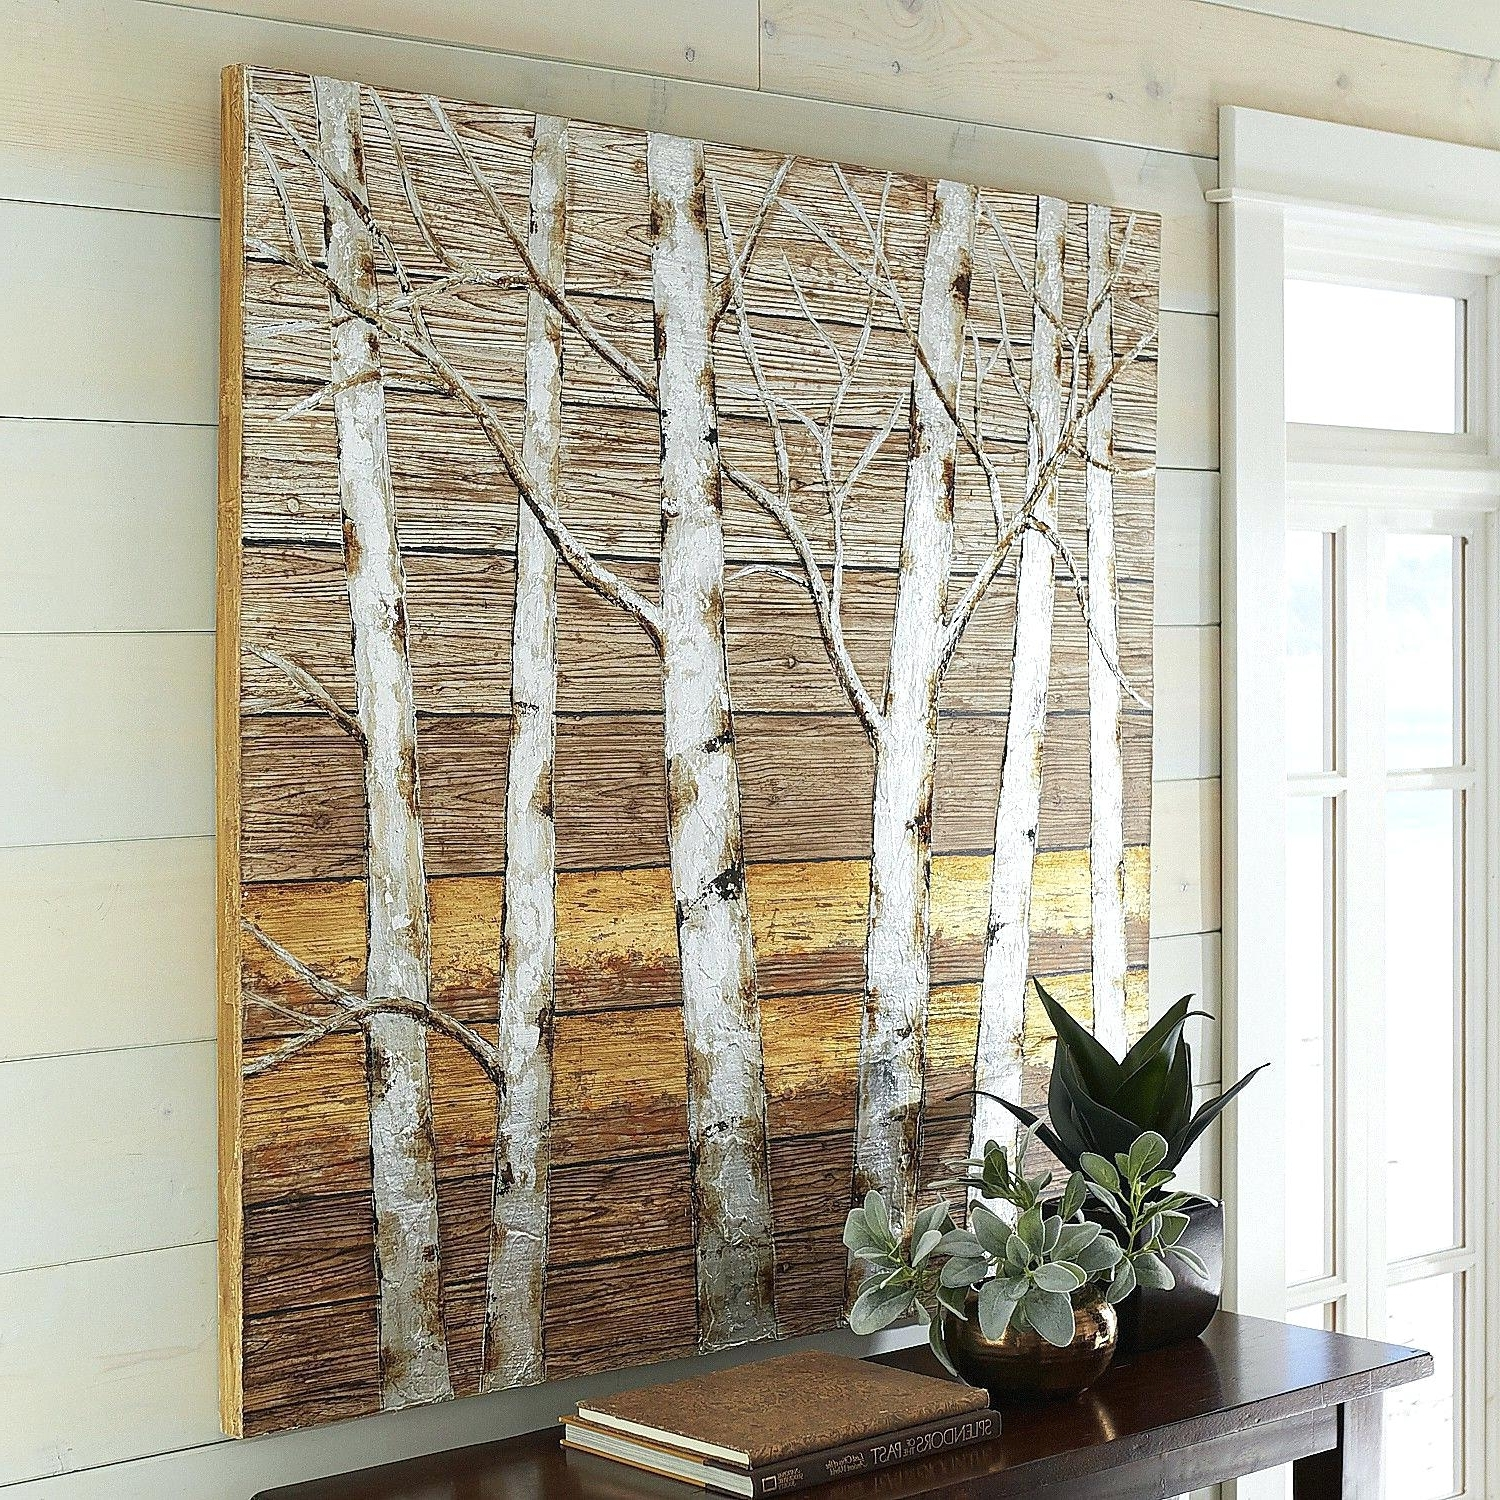 Pier 1 Wall Art With Regard To Most Up To Date Metallic Birch Trees Wall Art Pier 1 Imports One Decor (Gallery 8 of 20)